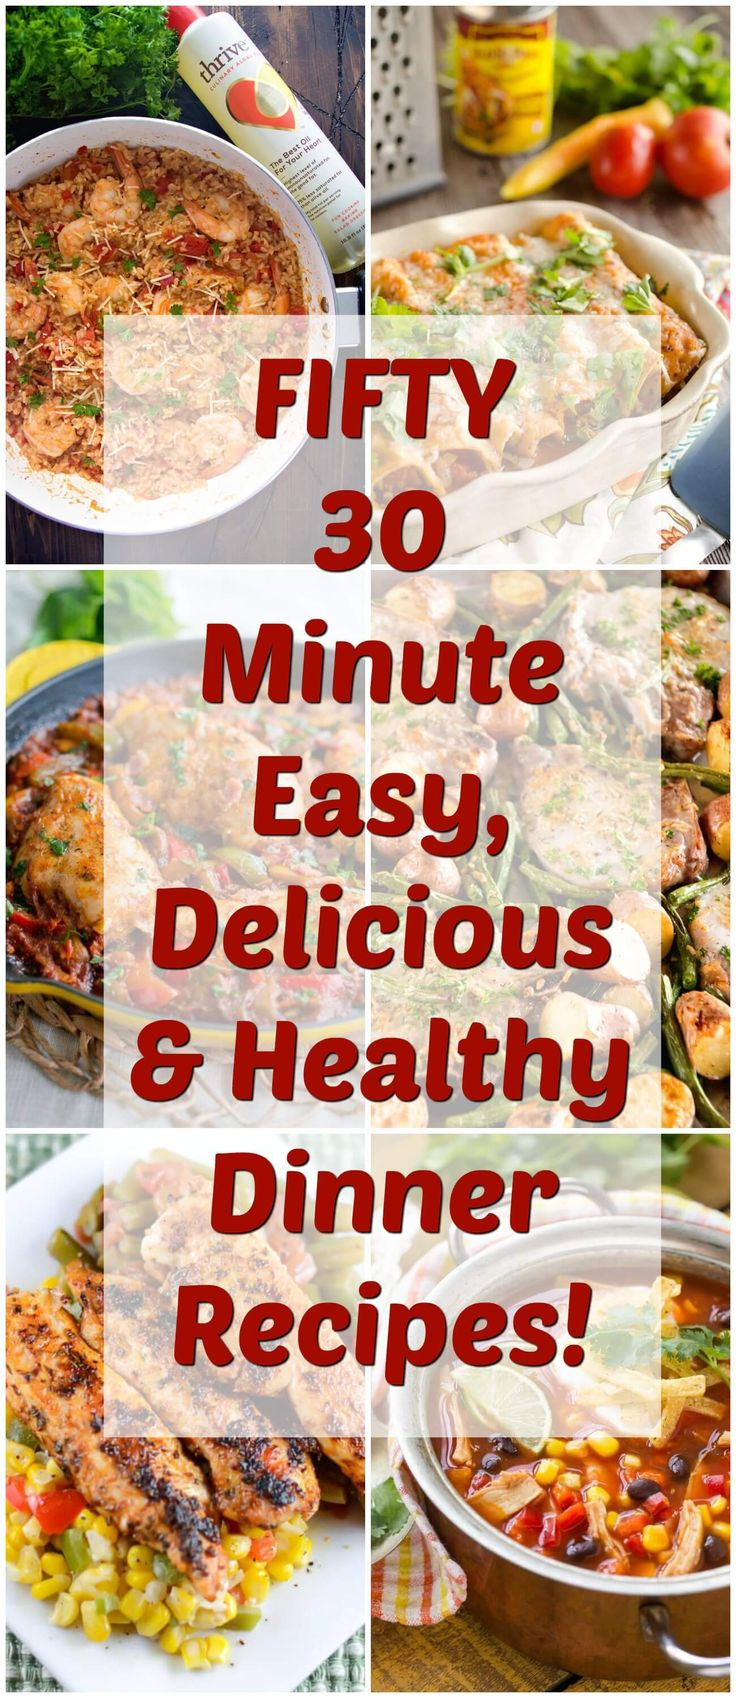 50 Healthy Dinner Recipes In 30 Minutes Healthy Healthy Dinners And Track